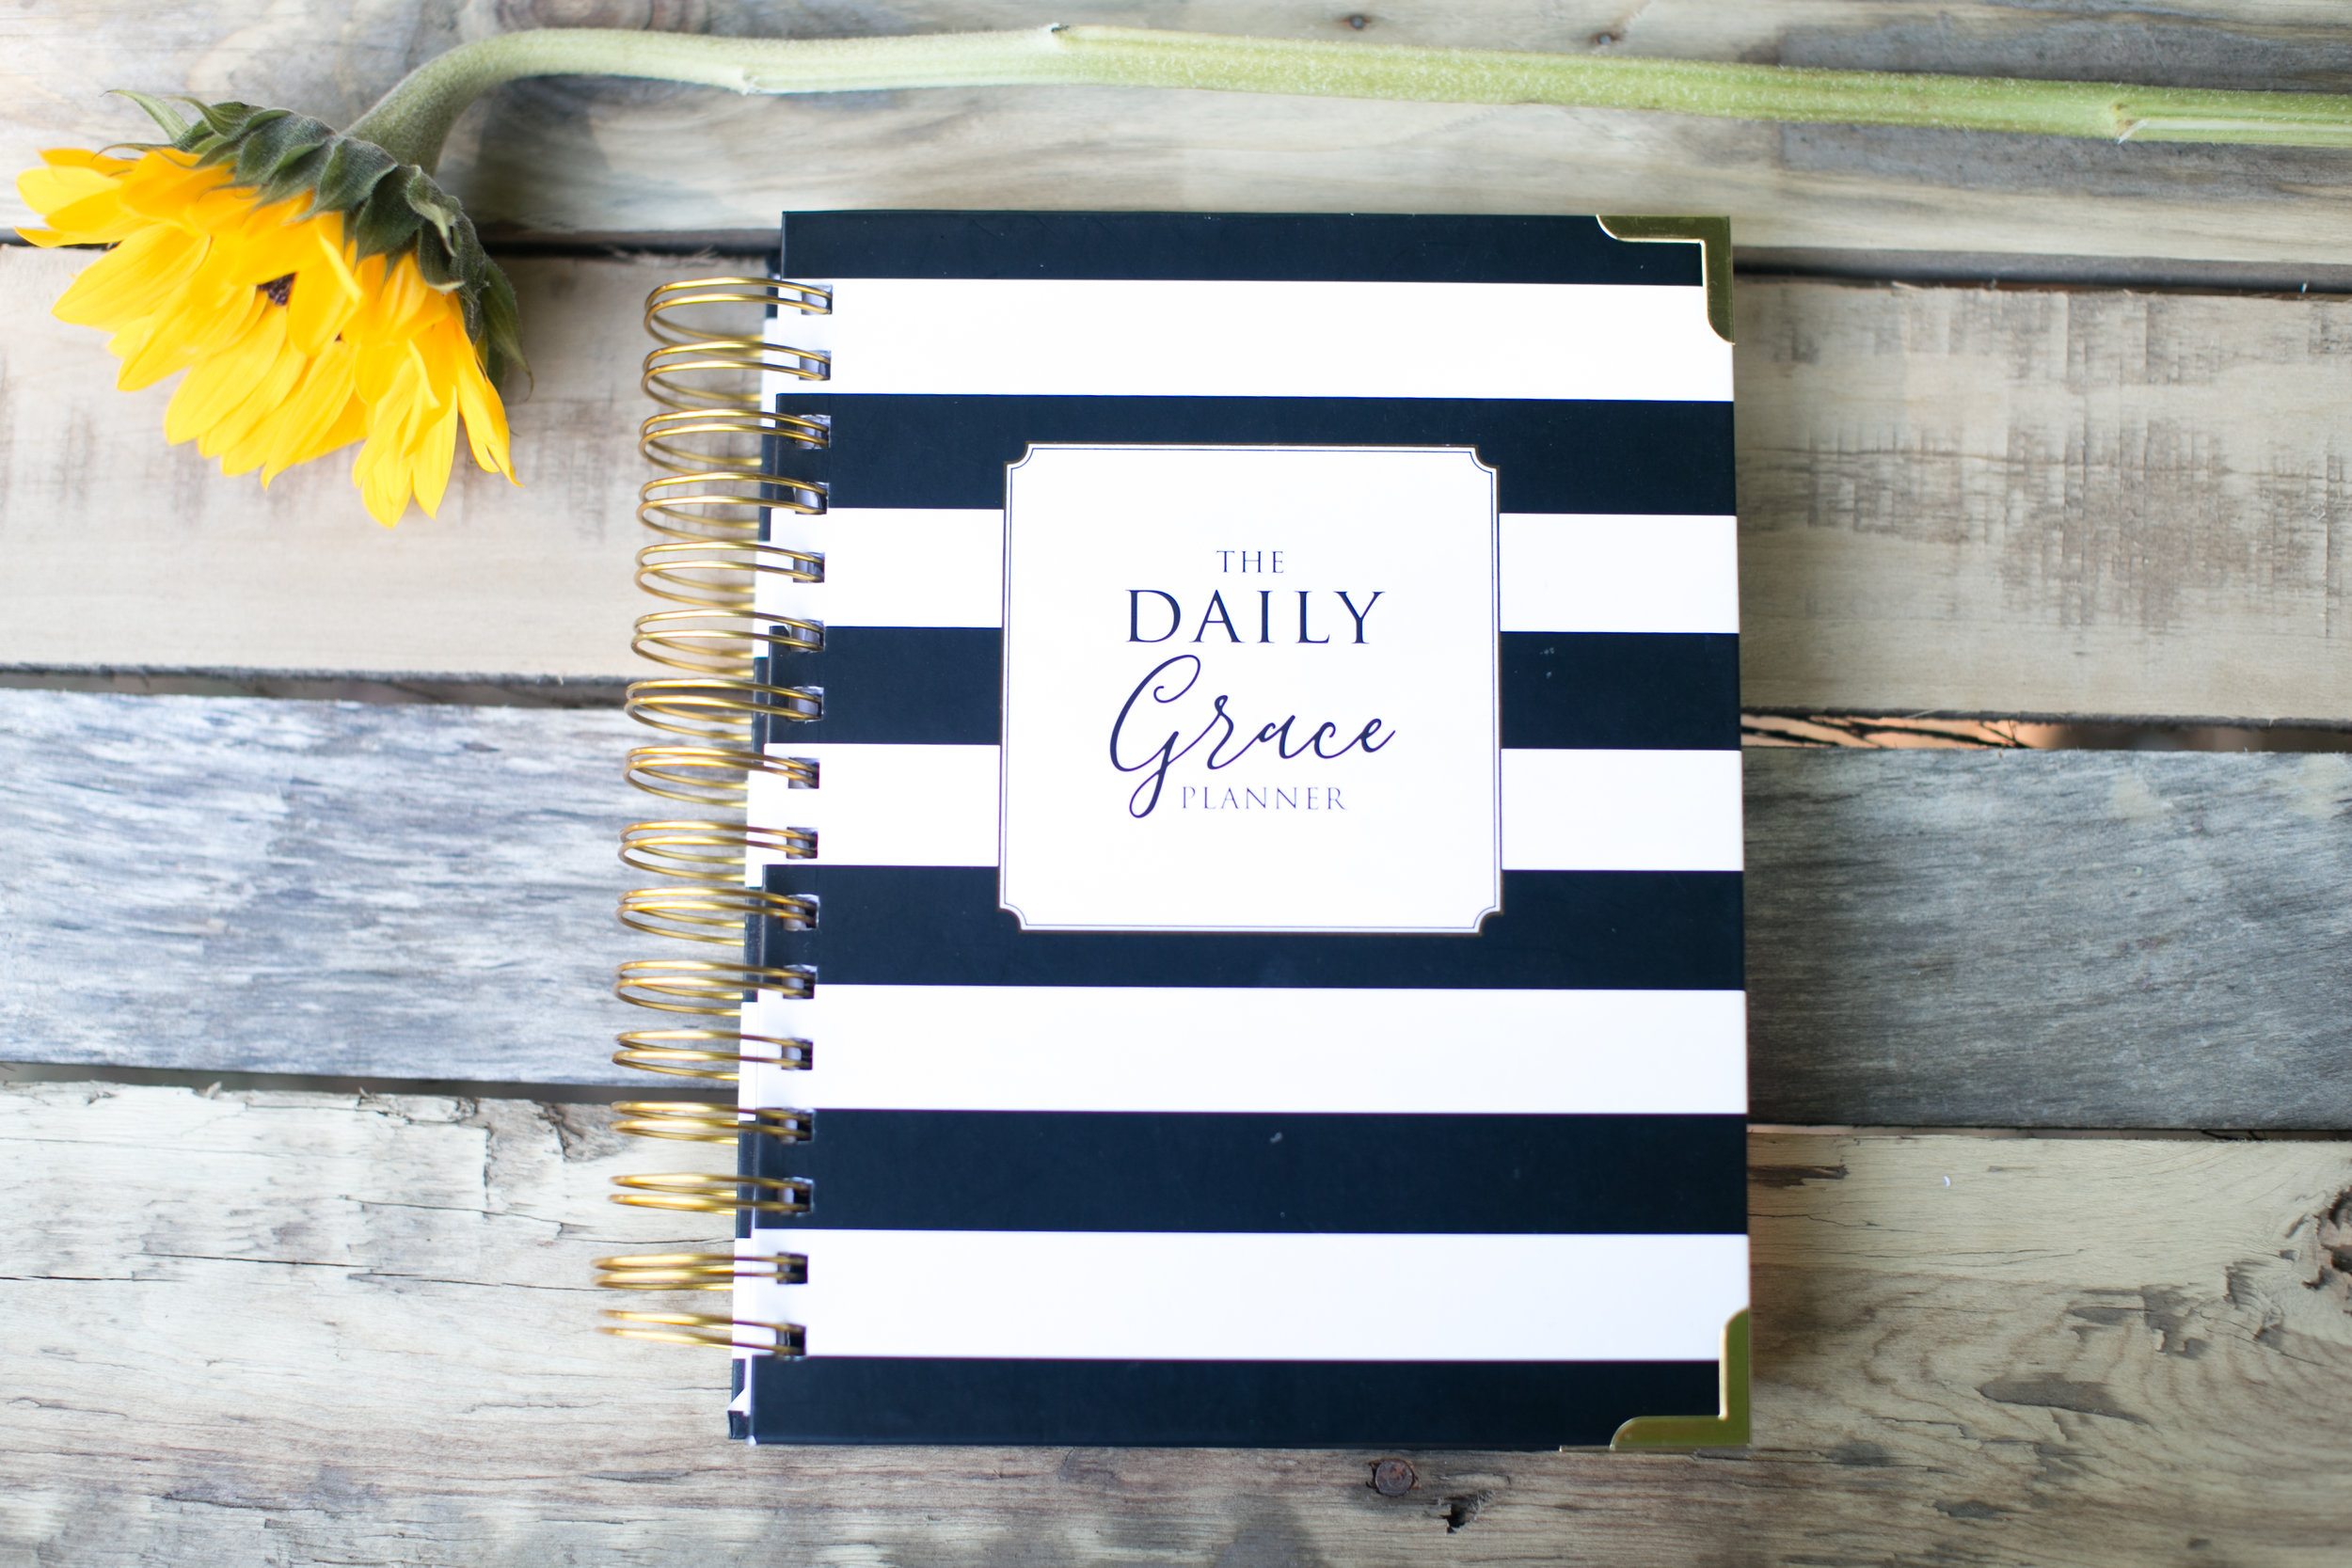 daily grace co planner